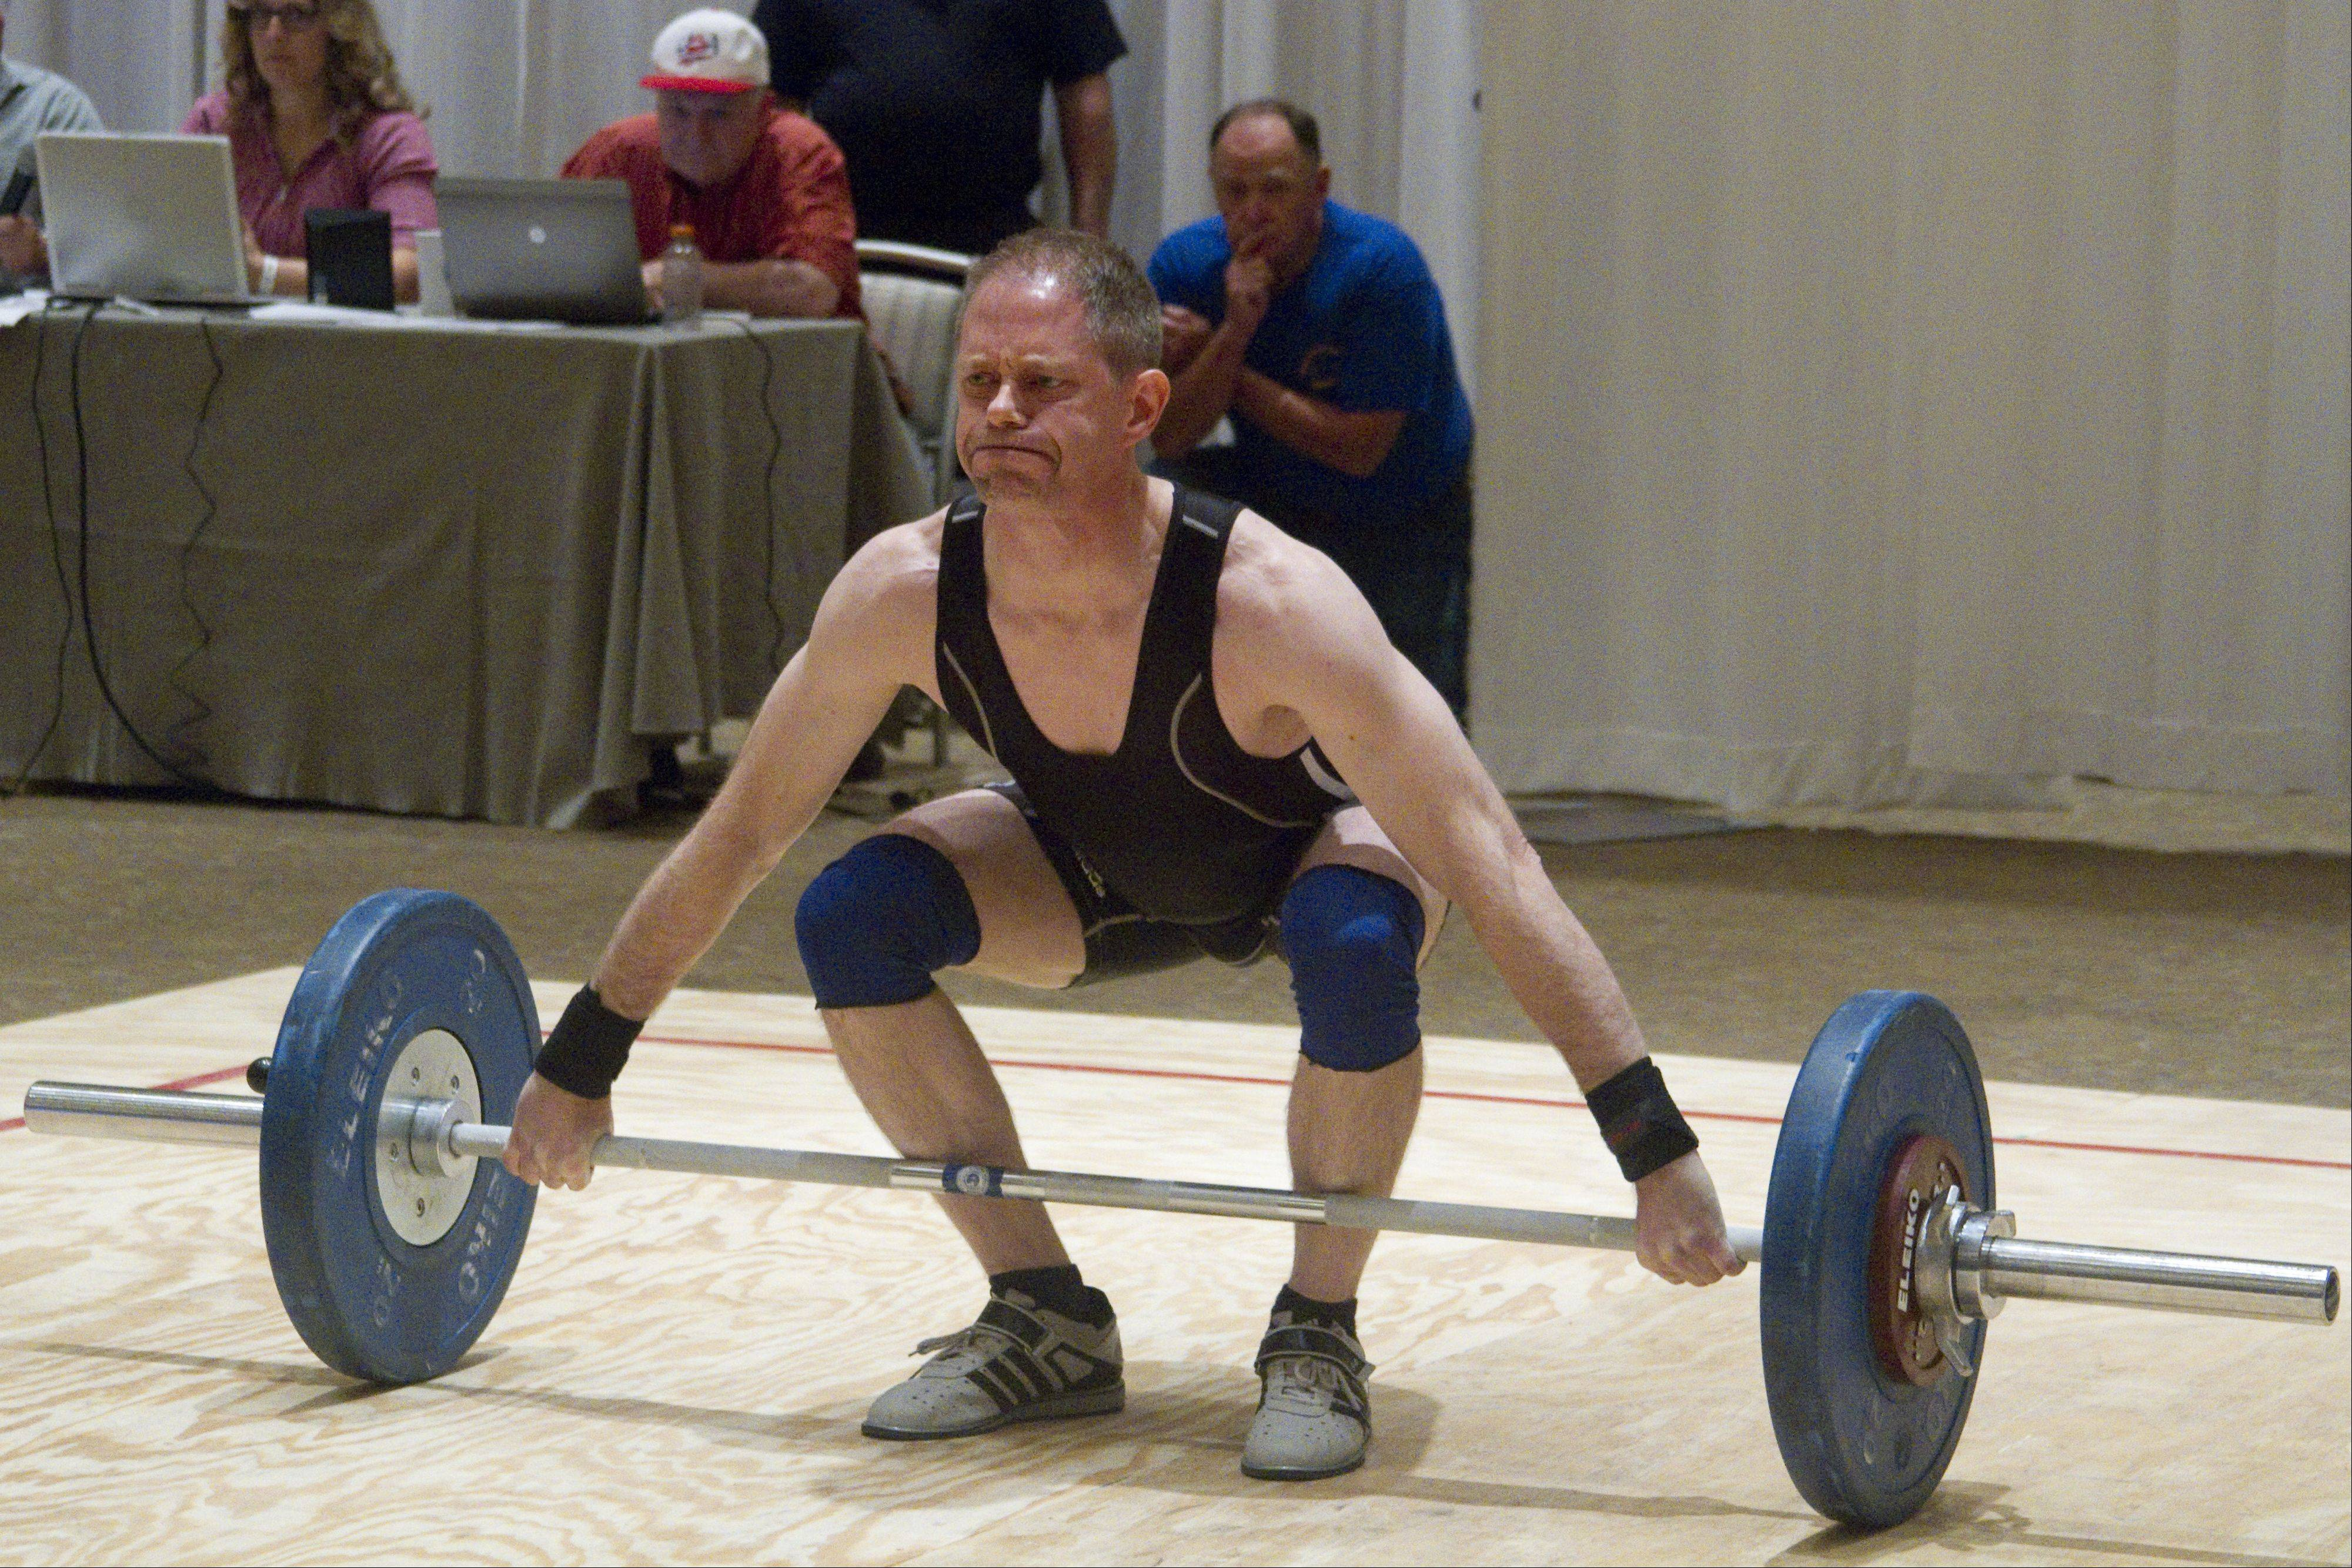 Mark Hummel, a weightlifter representing the United States, attempts to lift 70 kilograms at the 2013 Pan American Masters Weightlifting Championships Sunday in Itasca.